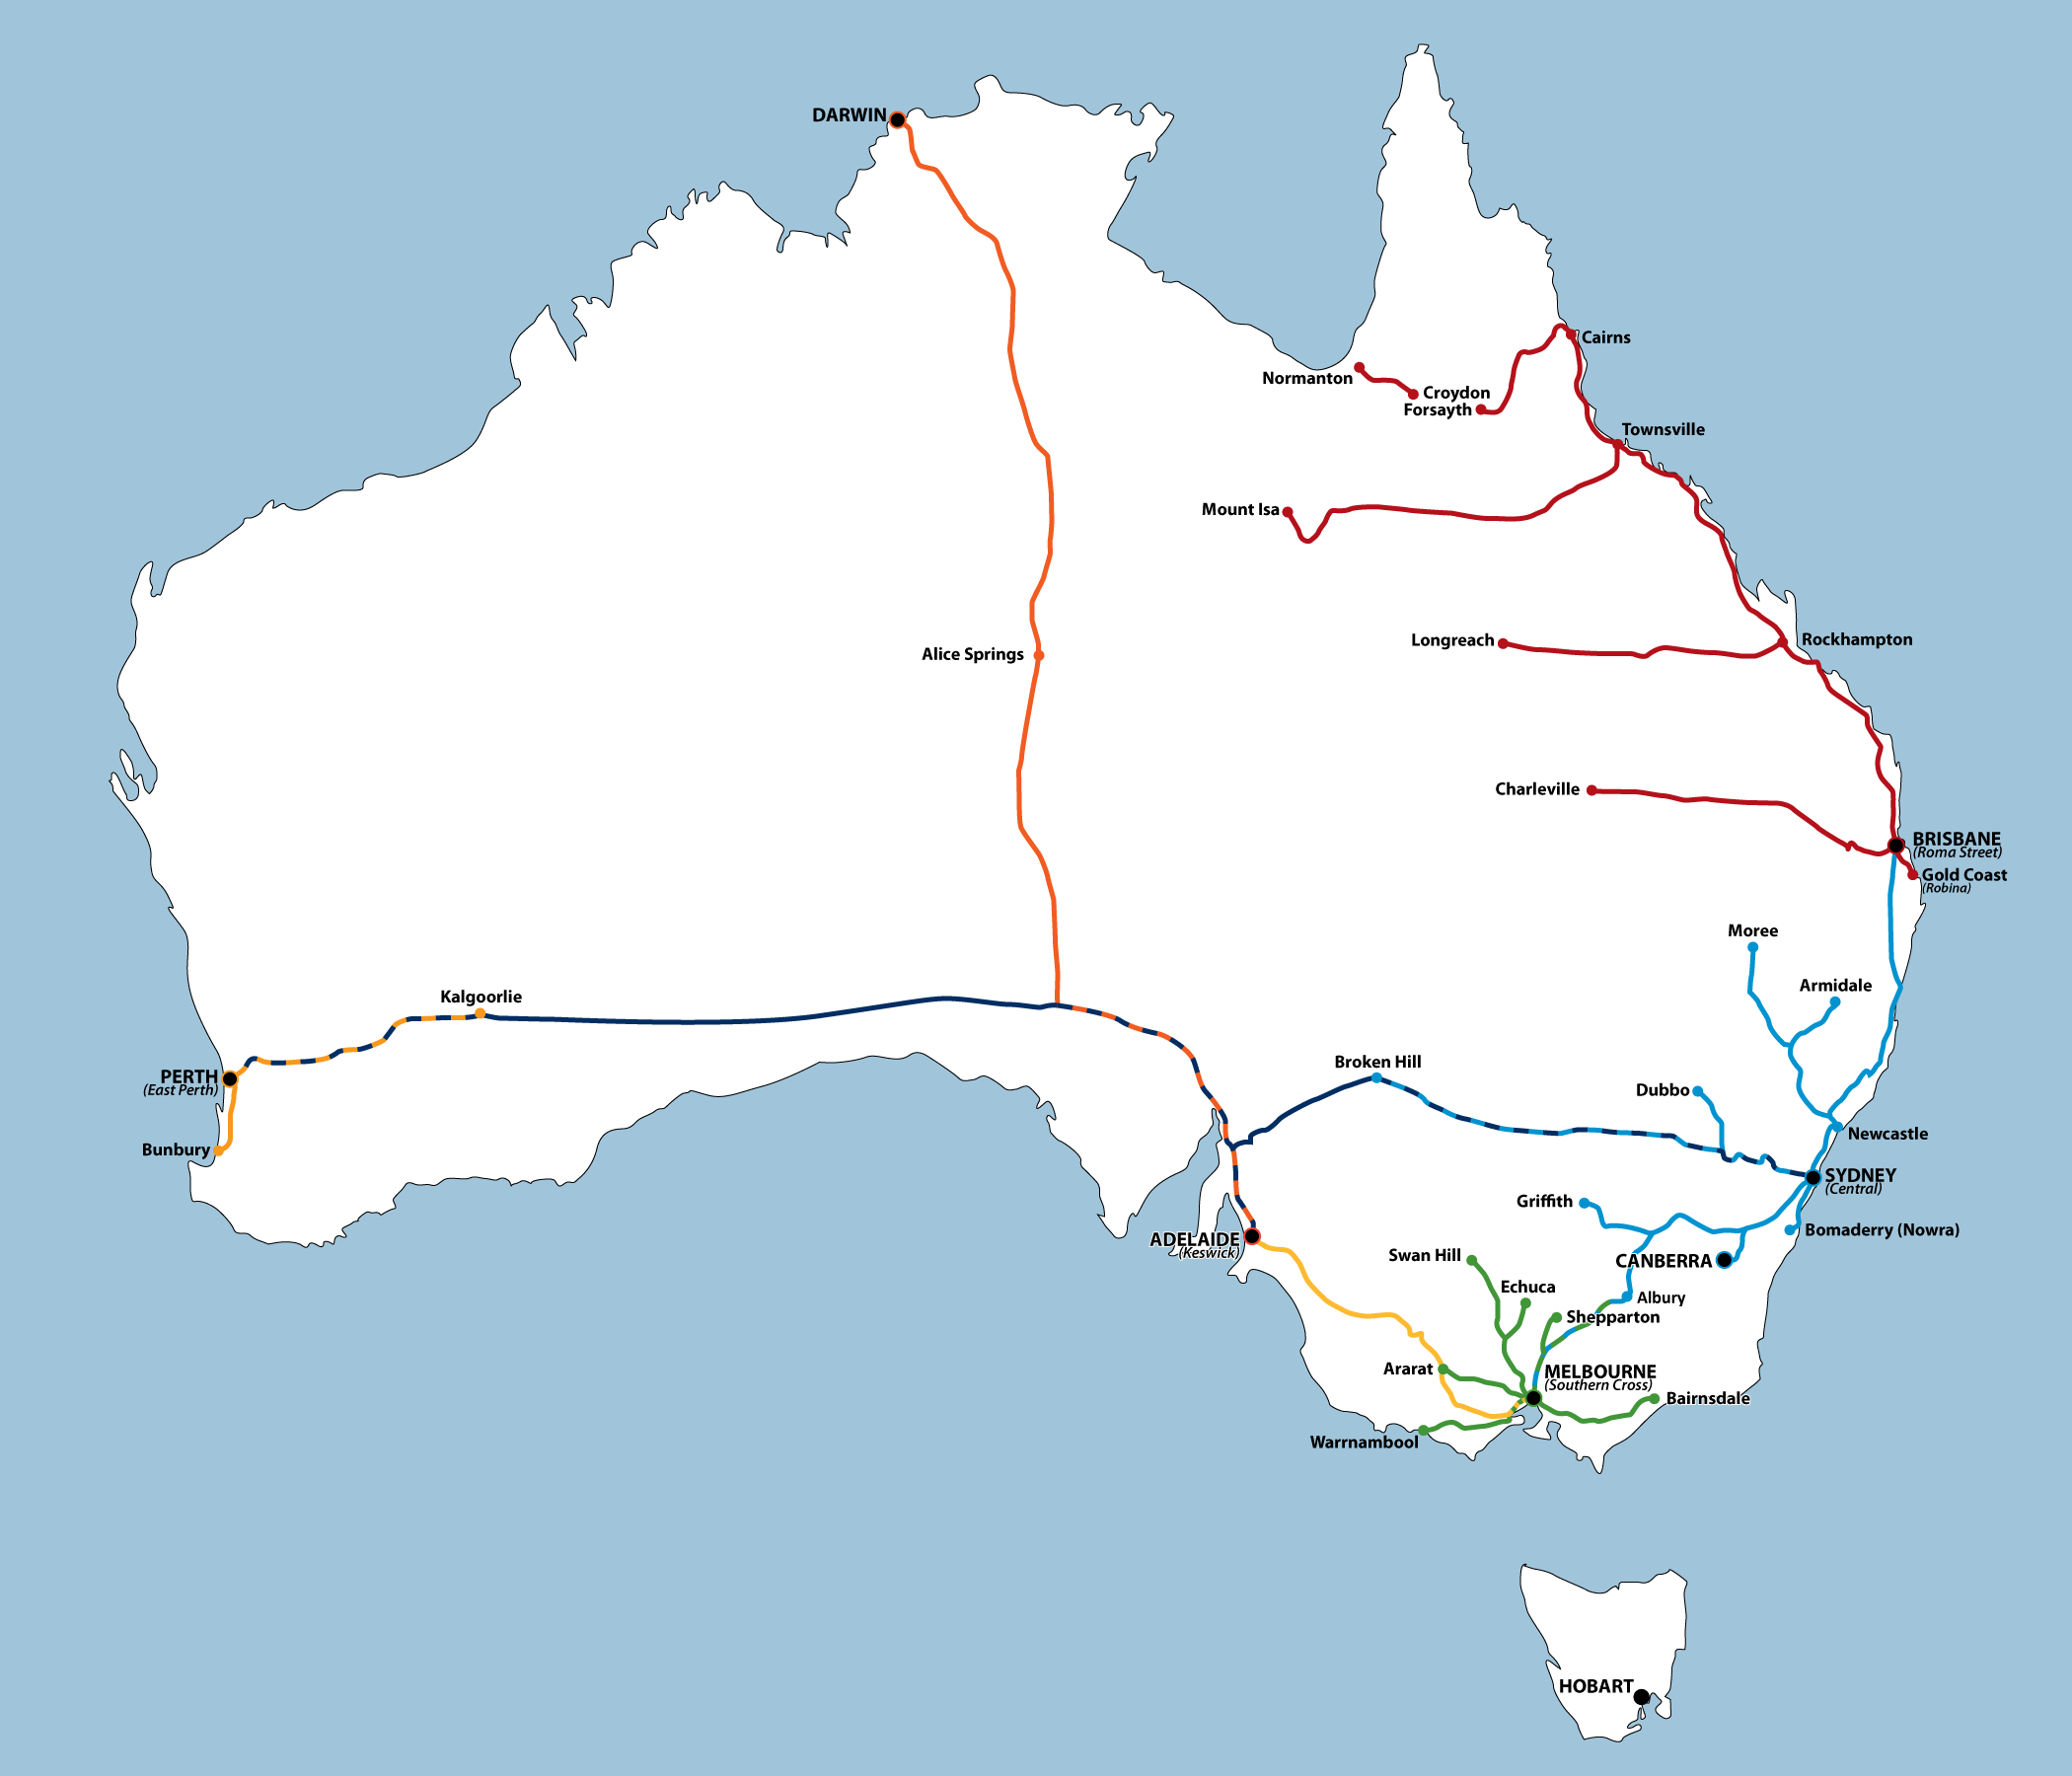 📌 Eisenbahn in Australien on hawaii map, guam map, marshall islands map, ocean map, oceania map, asia map, atlantic map, mexico map, bali map, africa map, laminated map, ring of fire map, europe map, philippine sea map, time zone map, hong kong map, south china sea map, east indies map, australia map, aegean map,